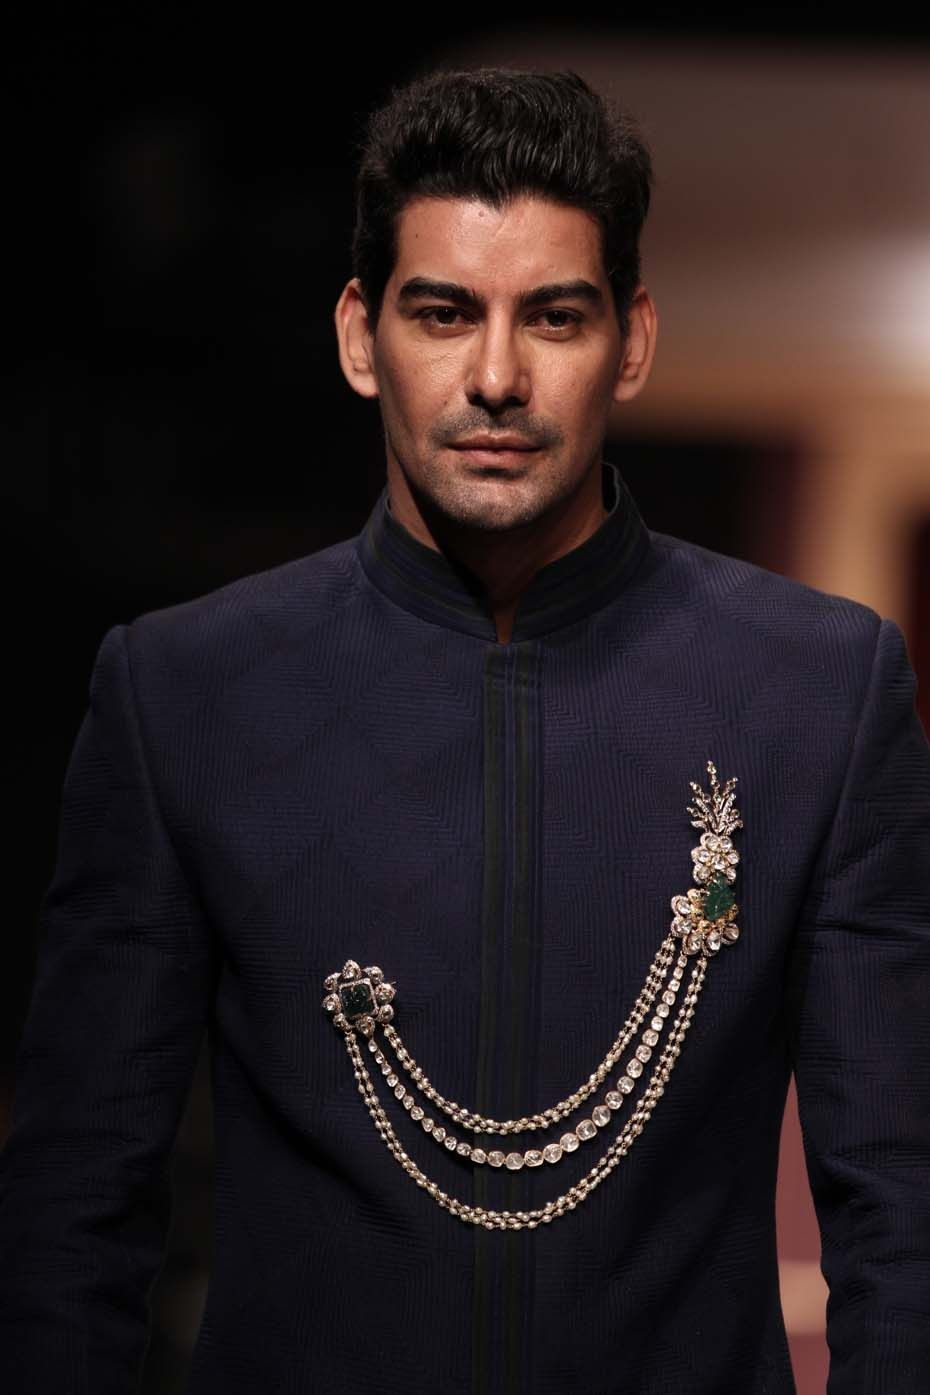 King for the day: jewellery for the Indian groom